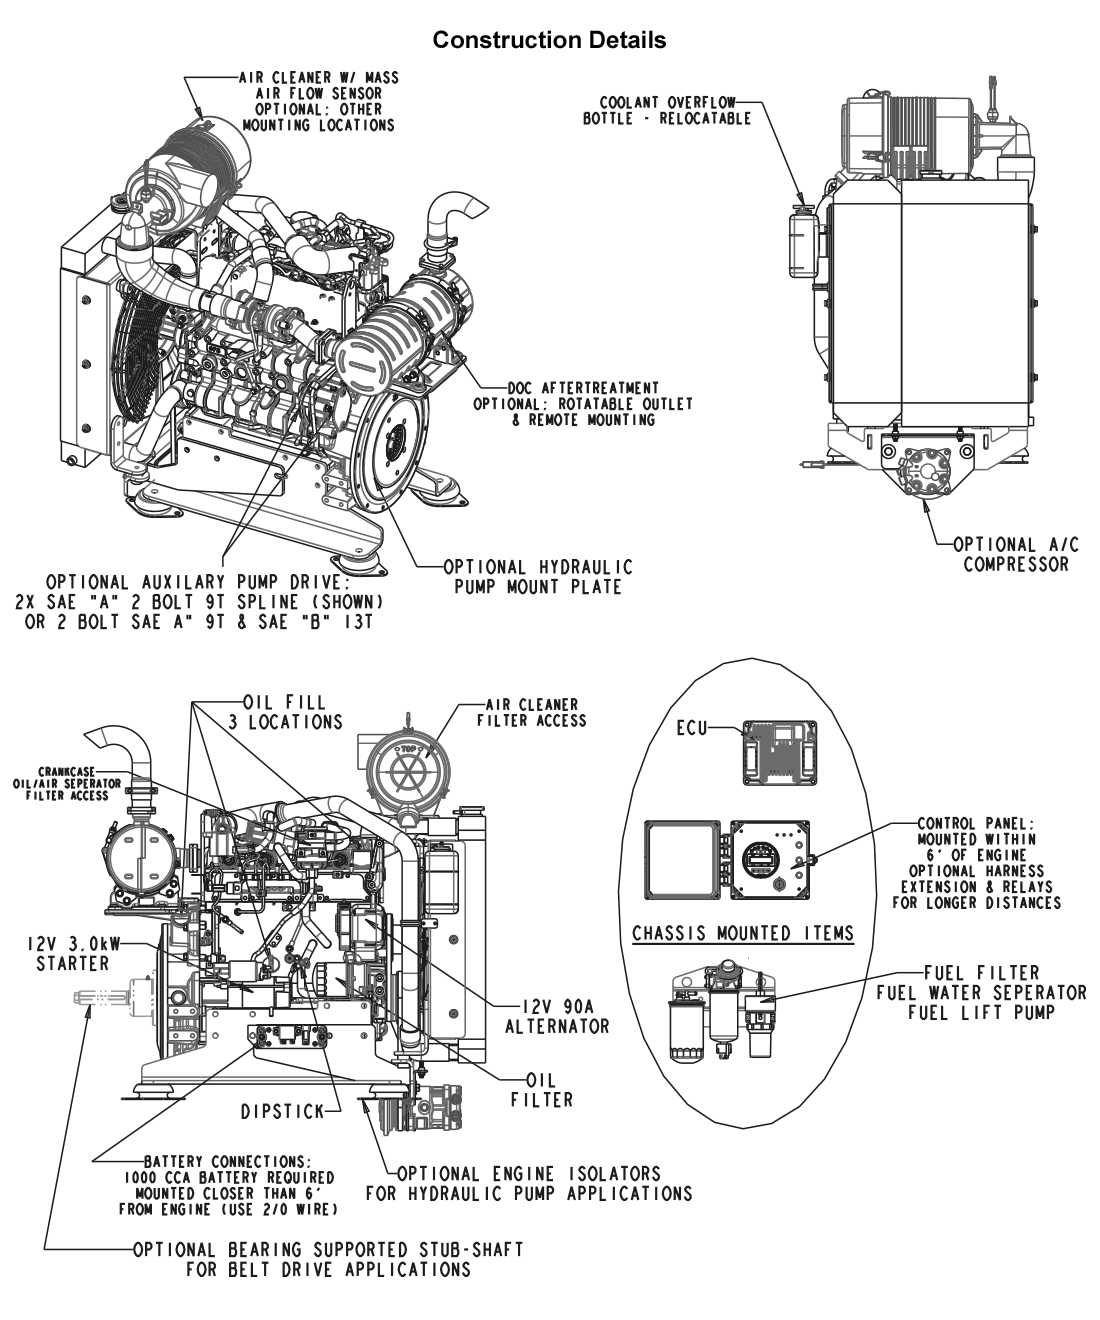 74.3 HP Diesel Power Unit Details-2